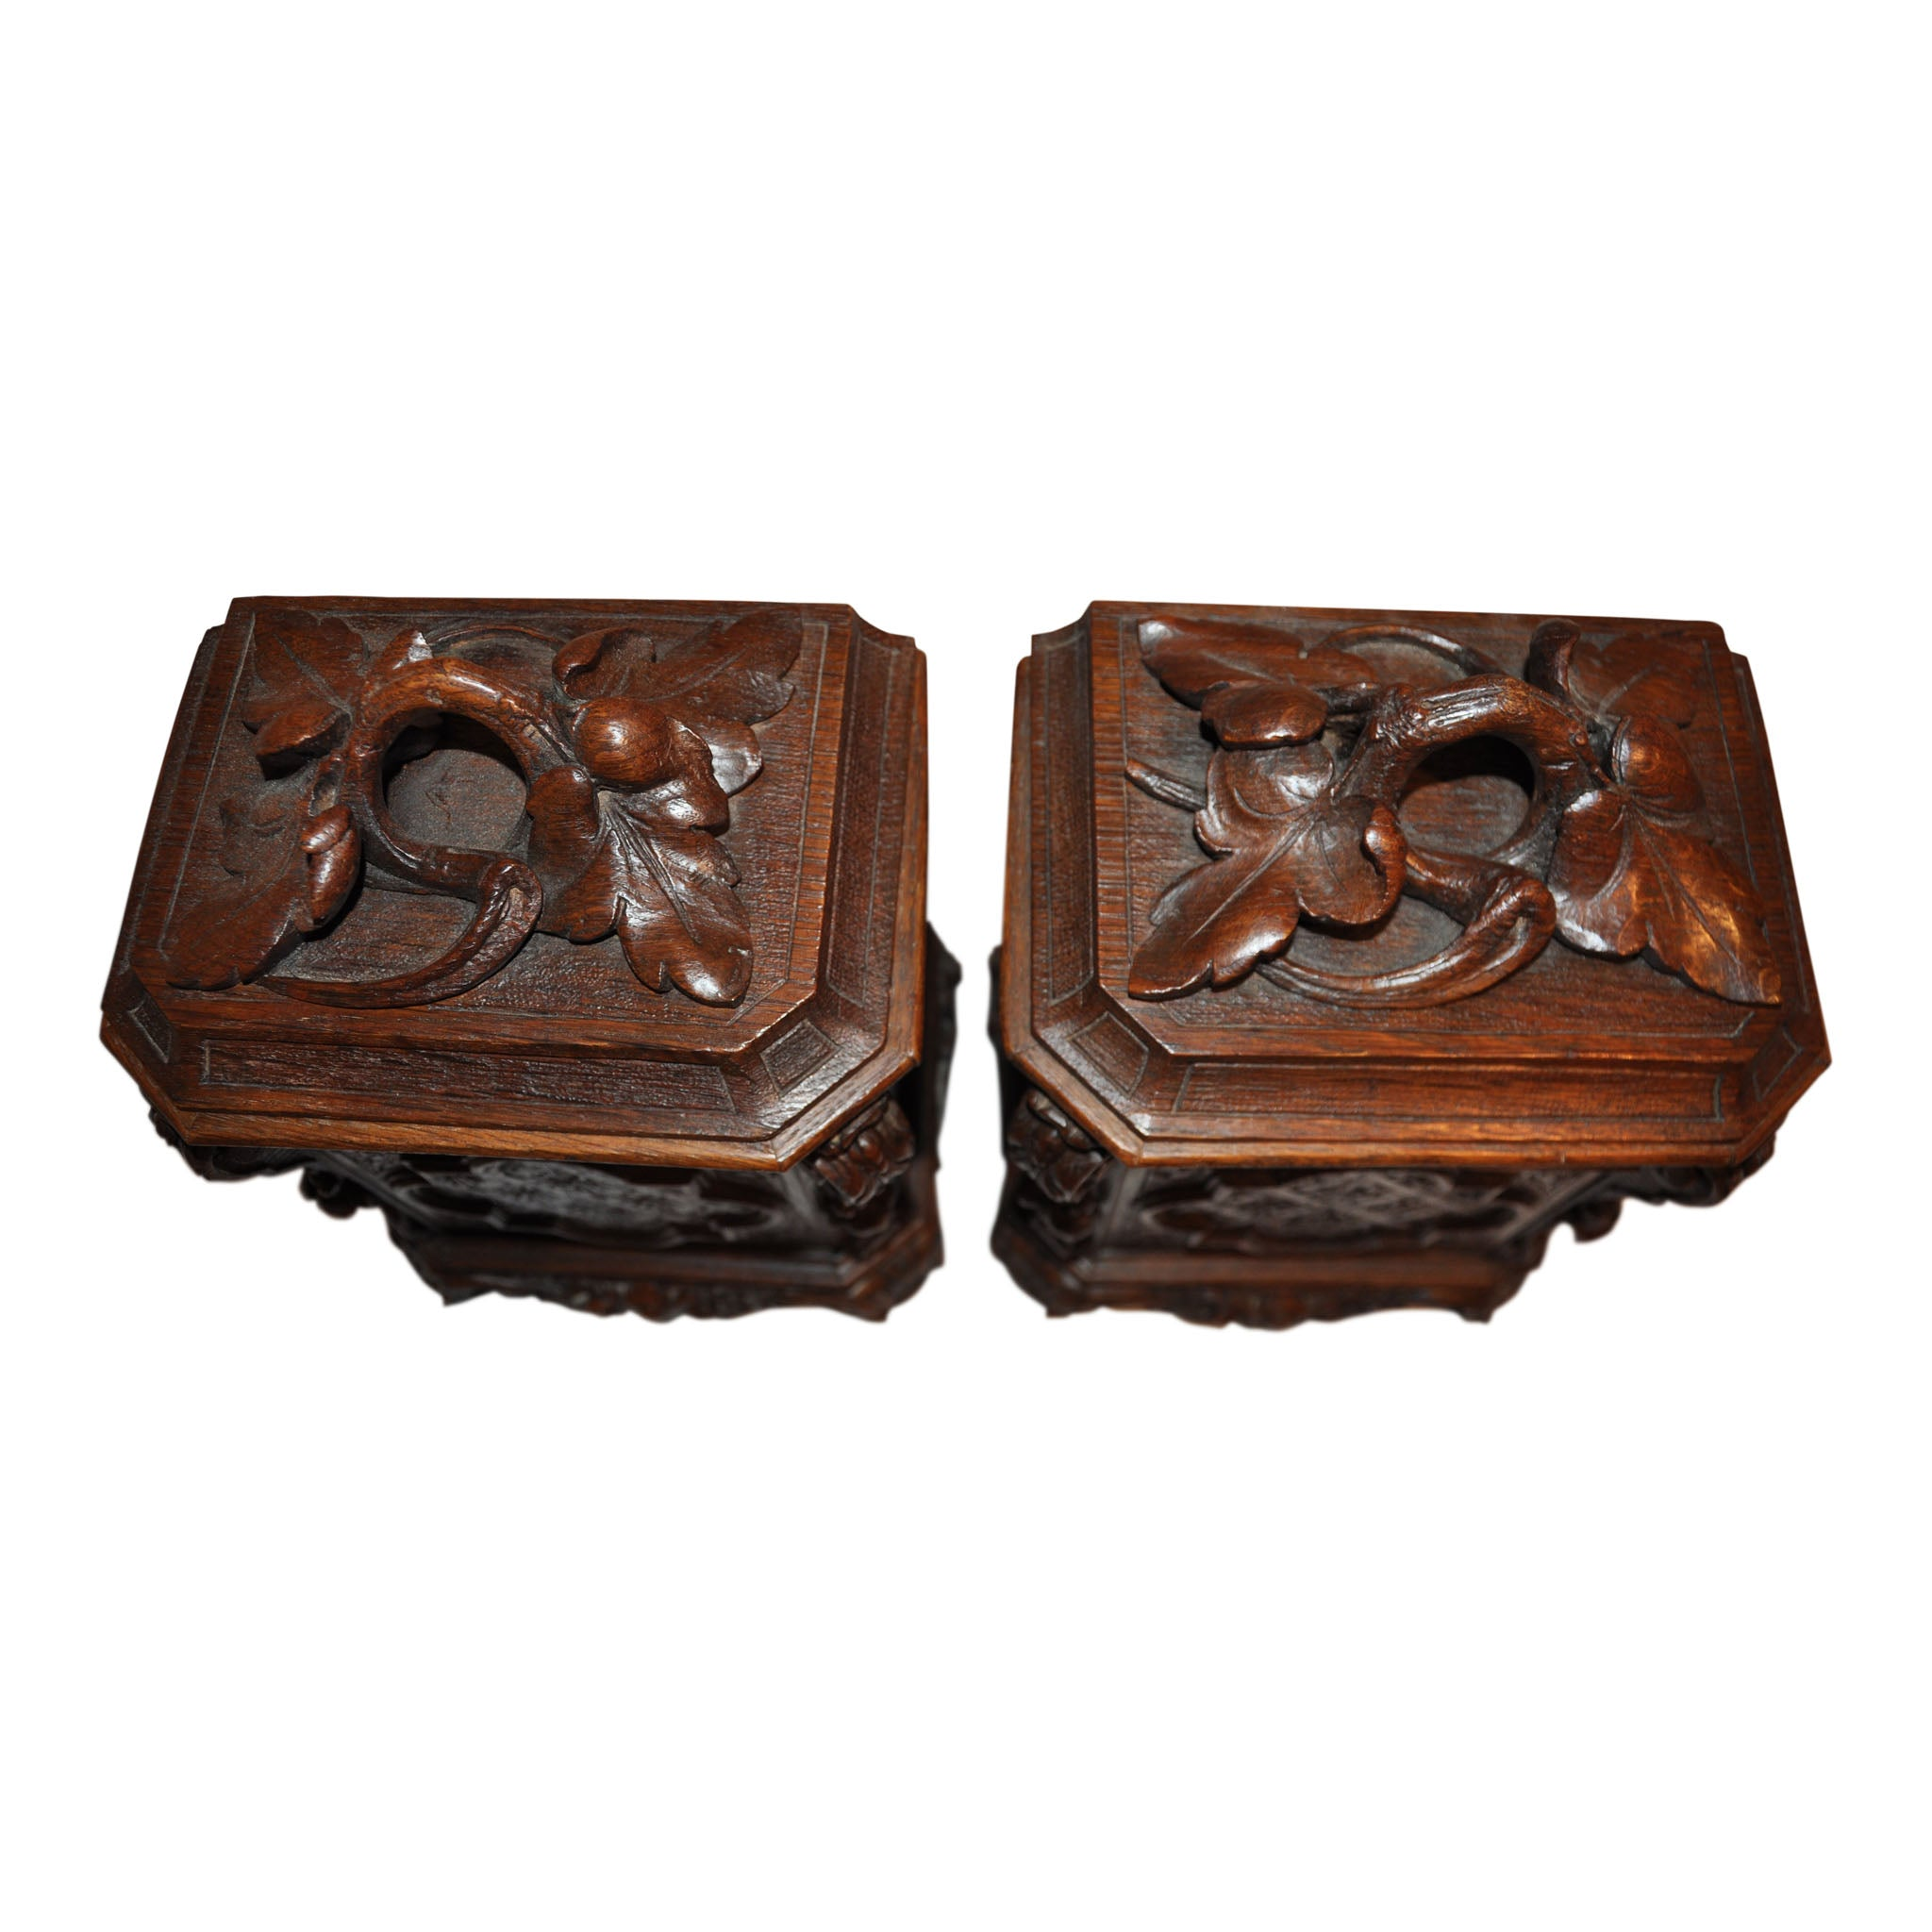 Carved Mantle Clock with Two Boxes Set/3